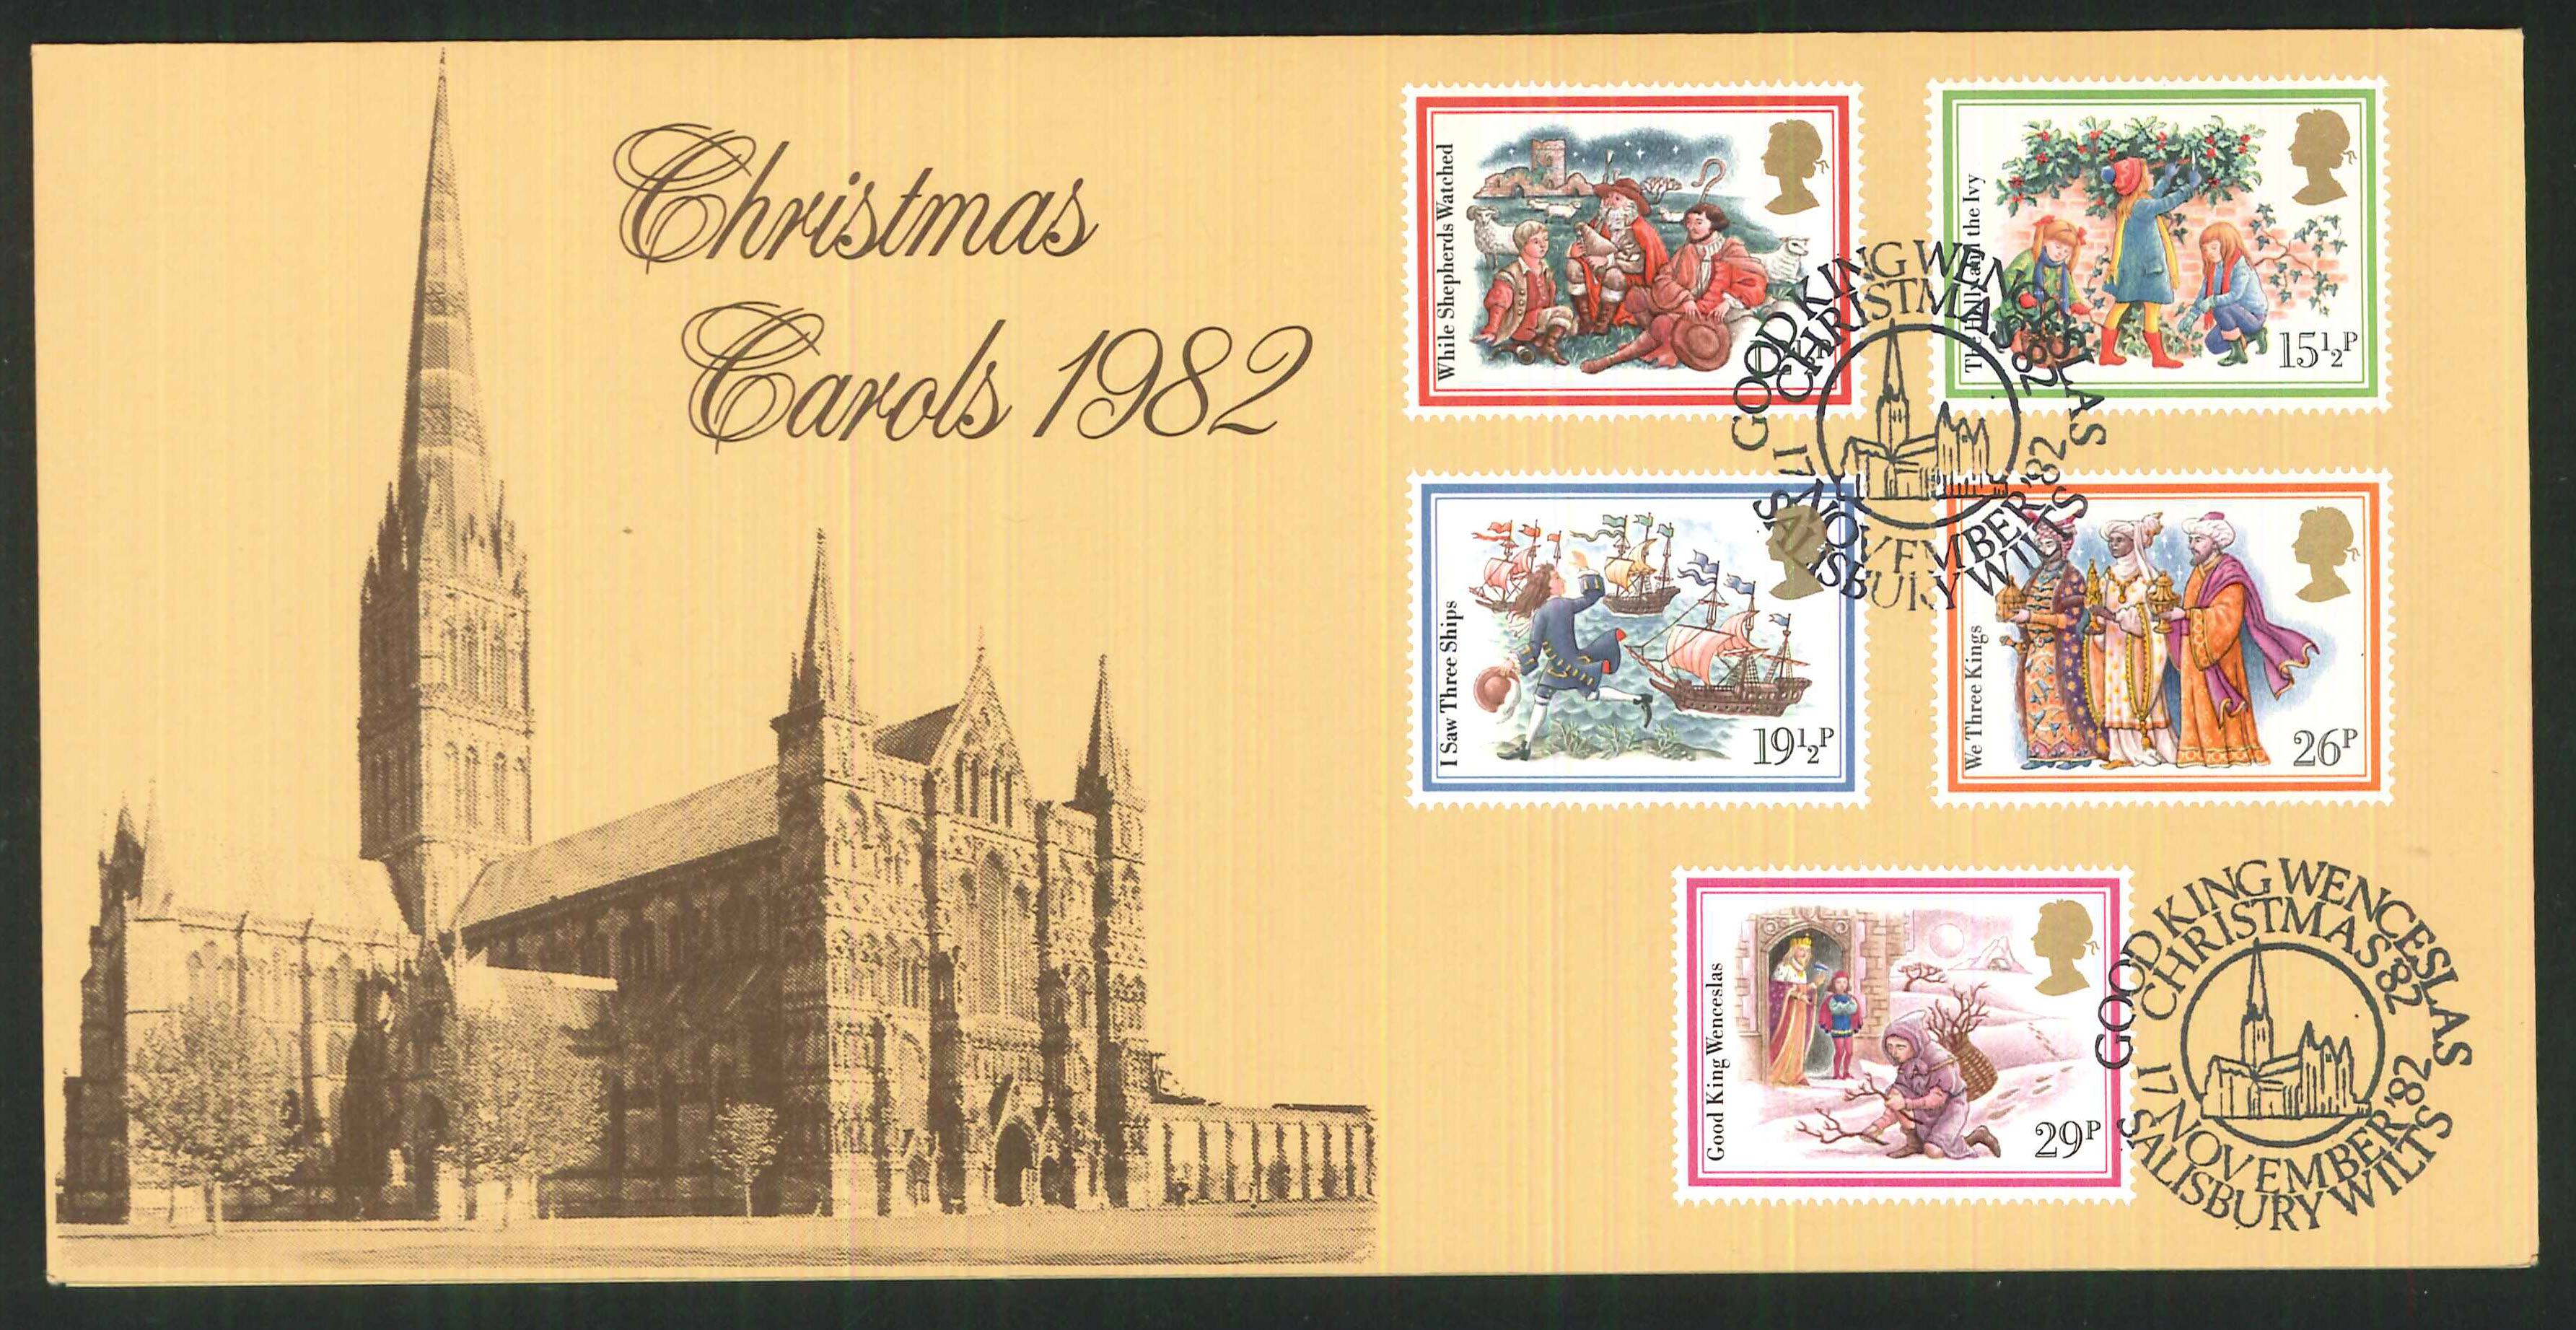 1982 - Christmas First Day Cover, Christmas 82 Salisbury Postmark